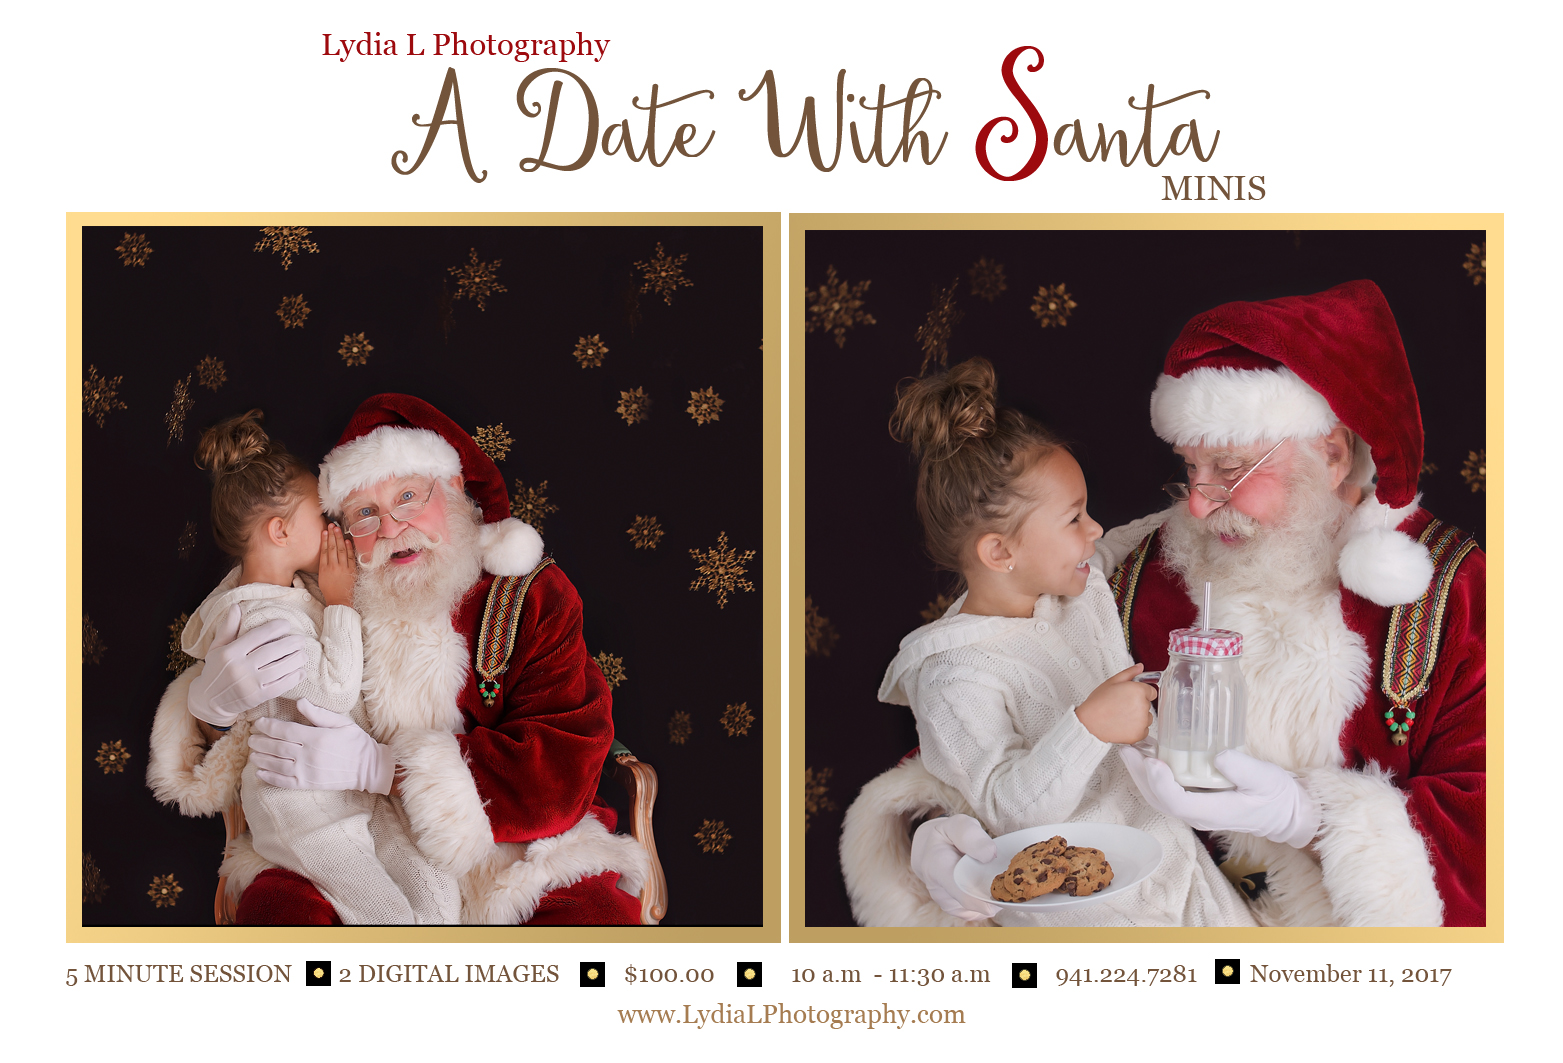 A date with santa to MM Press.jpg